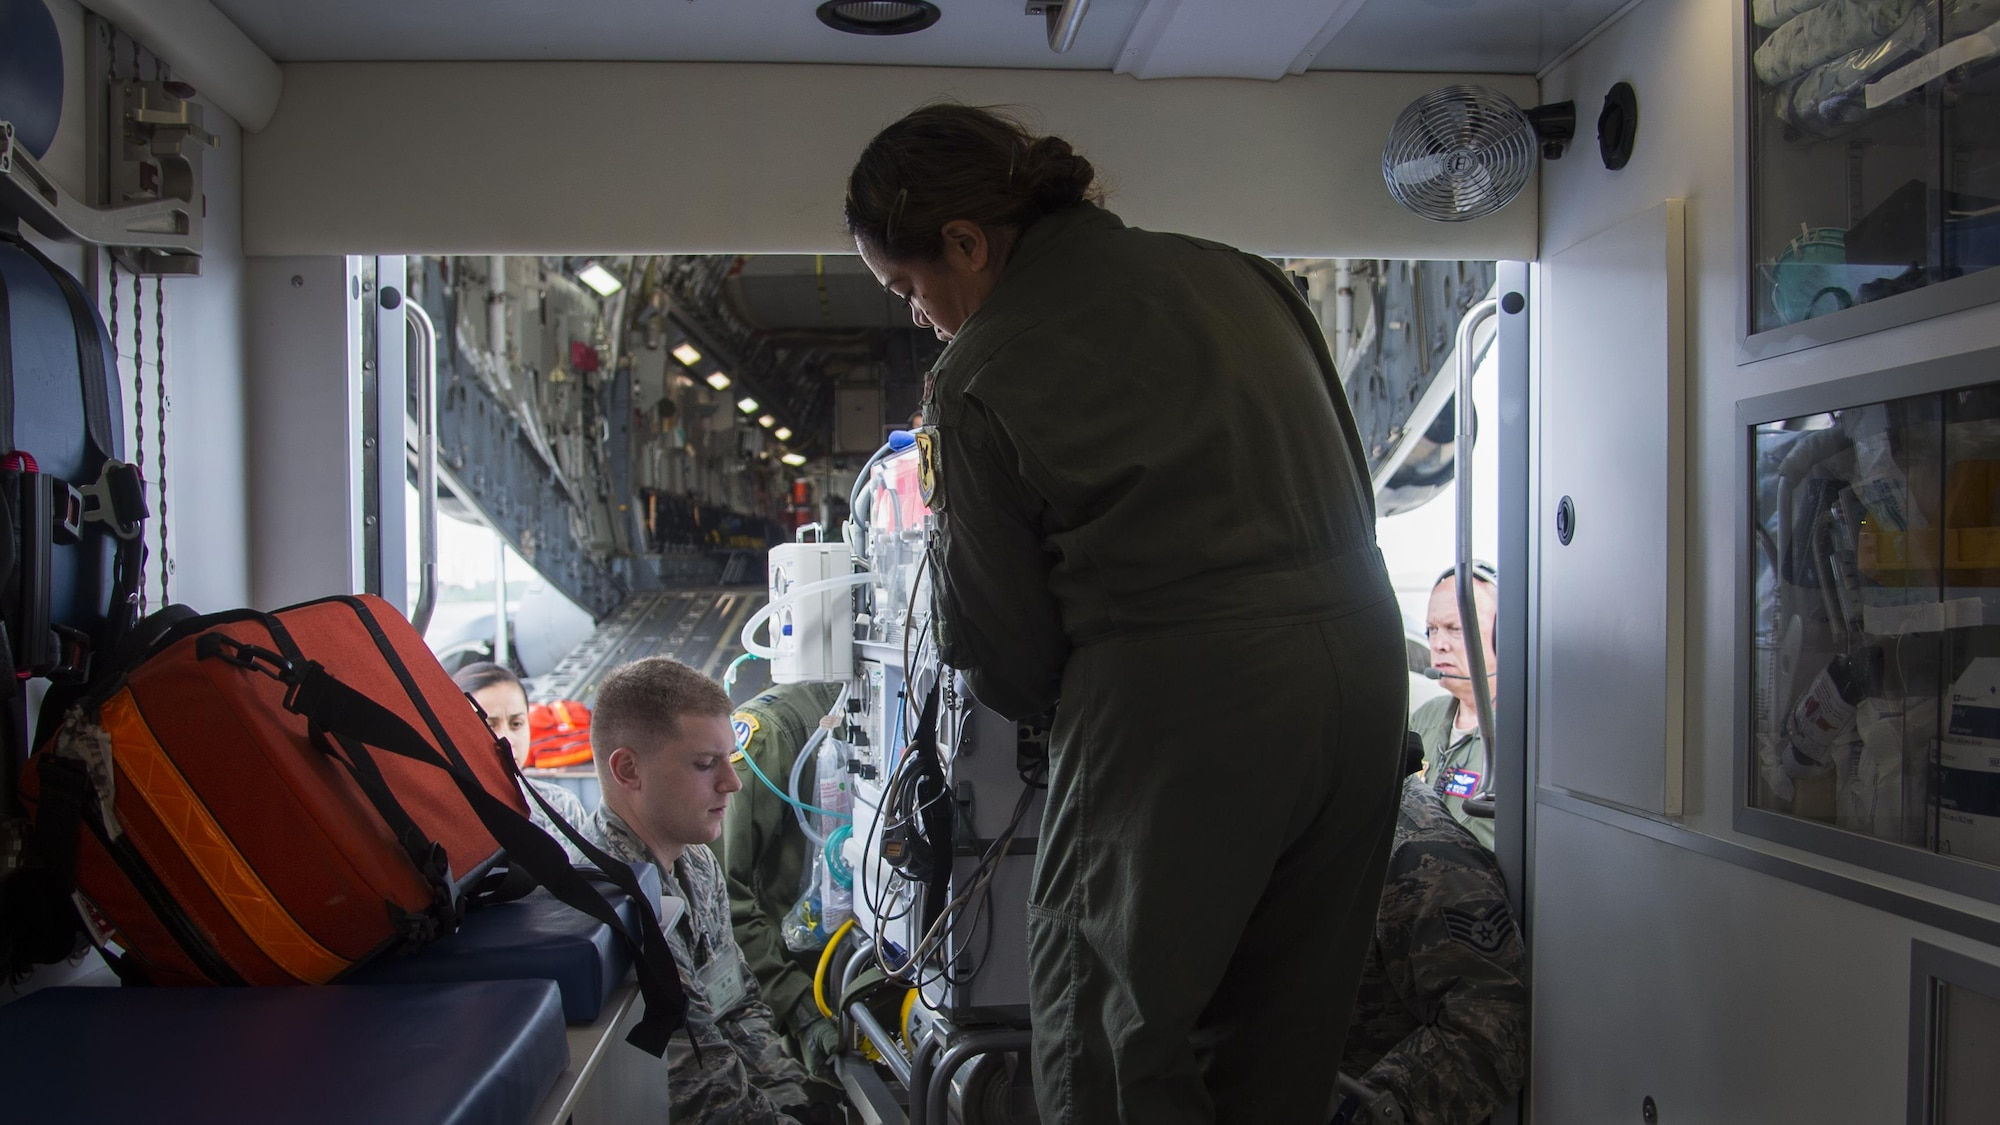 U.S. Air Force Maj. Margaret Dodd, a 18th Medical Operations Squadron neonatal intensive care unit nurse from Kadena Air Base, Japan, assists in lifting Oliver McKeown, son of Capt. Connor McKeown, during an aeromedical evacuation in Aomori, Japan, June 15, 2017. The coordination process also had to filter through the Aomori Airport Management Office, Theater Patient Movement Requirements Center, which builds the evacuation mission, source the aircraft and assign the aircrew and medical team. (U.S. Air Force photo by Senior Airman Deana Heitzman)